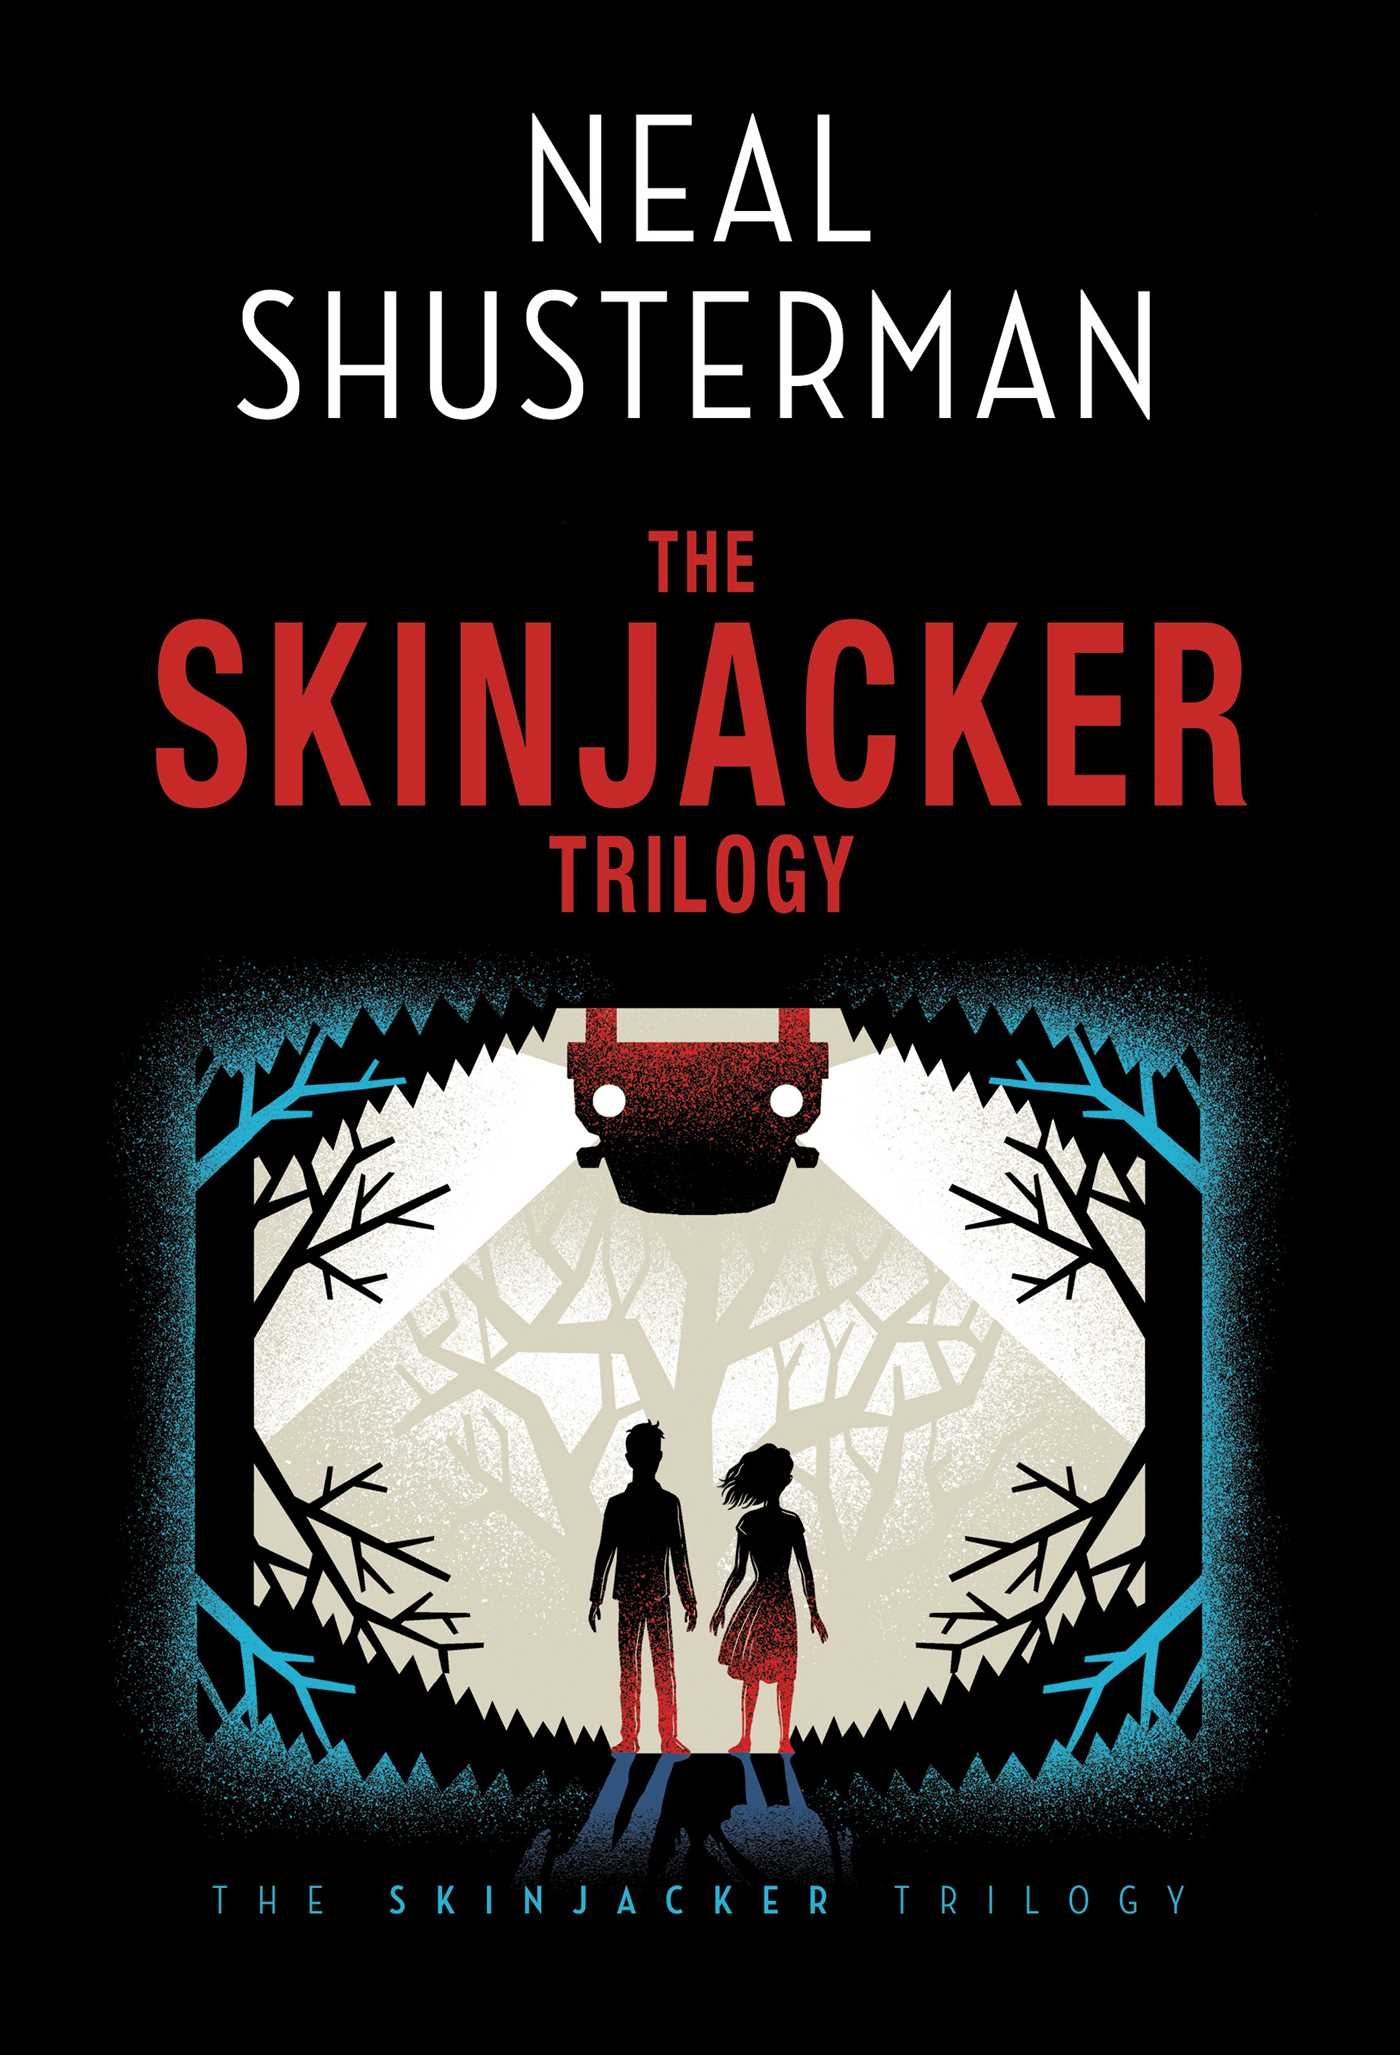 Neal shustermans skinjacker trilogy 9781442444270 hr